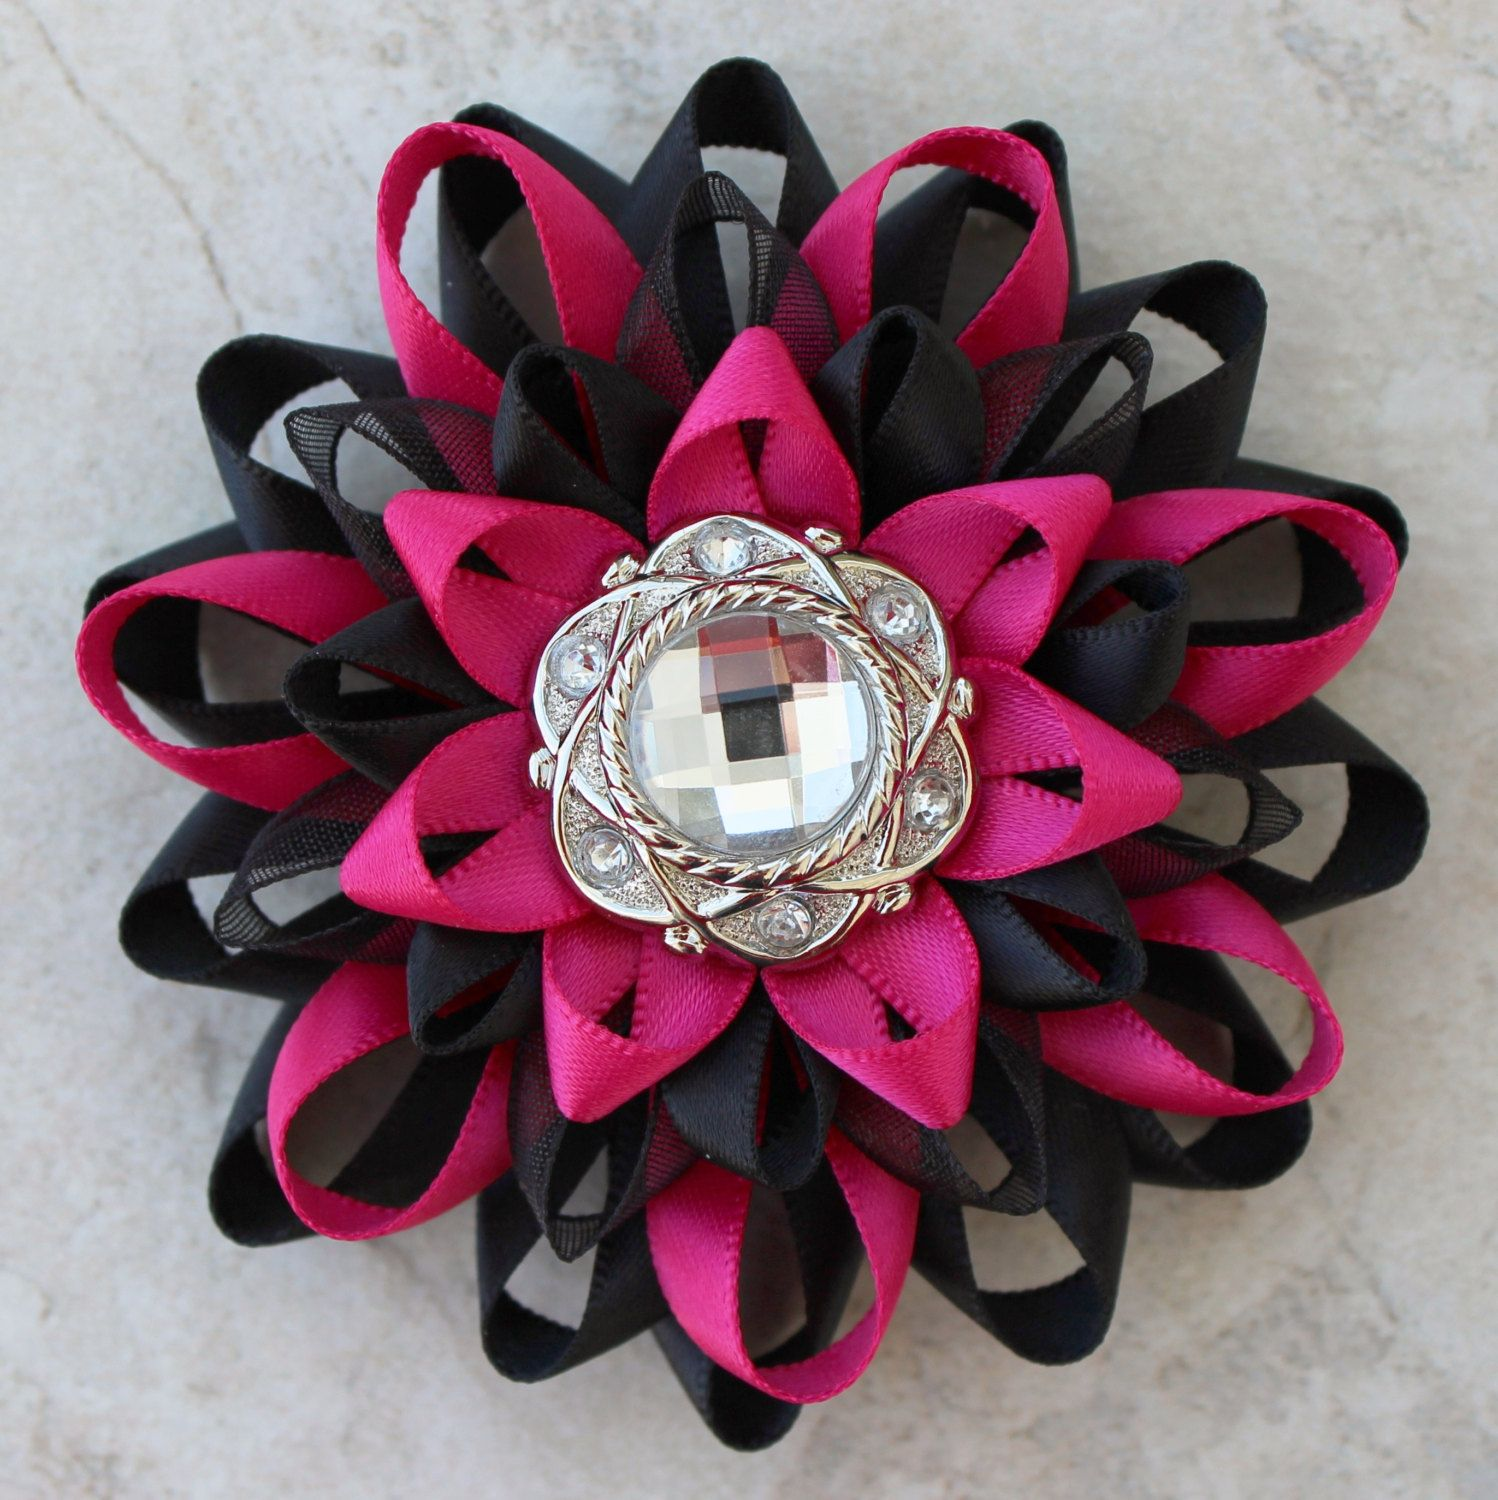 Flower Corsage Pin Hot Pink And Black Corsage Flower Black And Hot